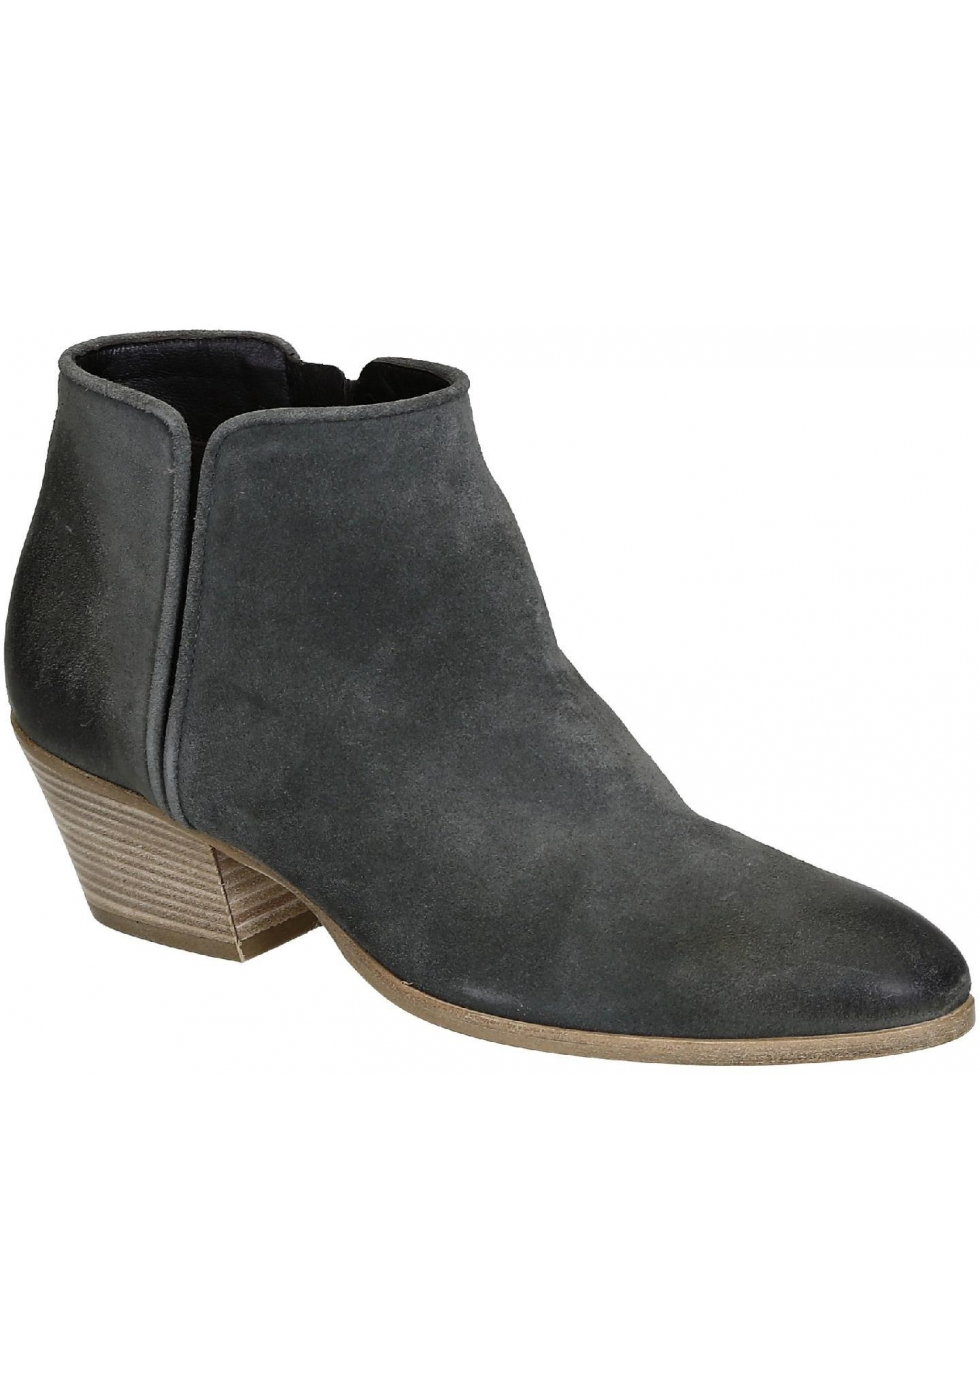 9cf9619314 Giuseppe Zanotti women's ankle boots in gray suede leather - Italian ...